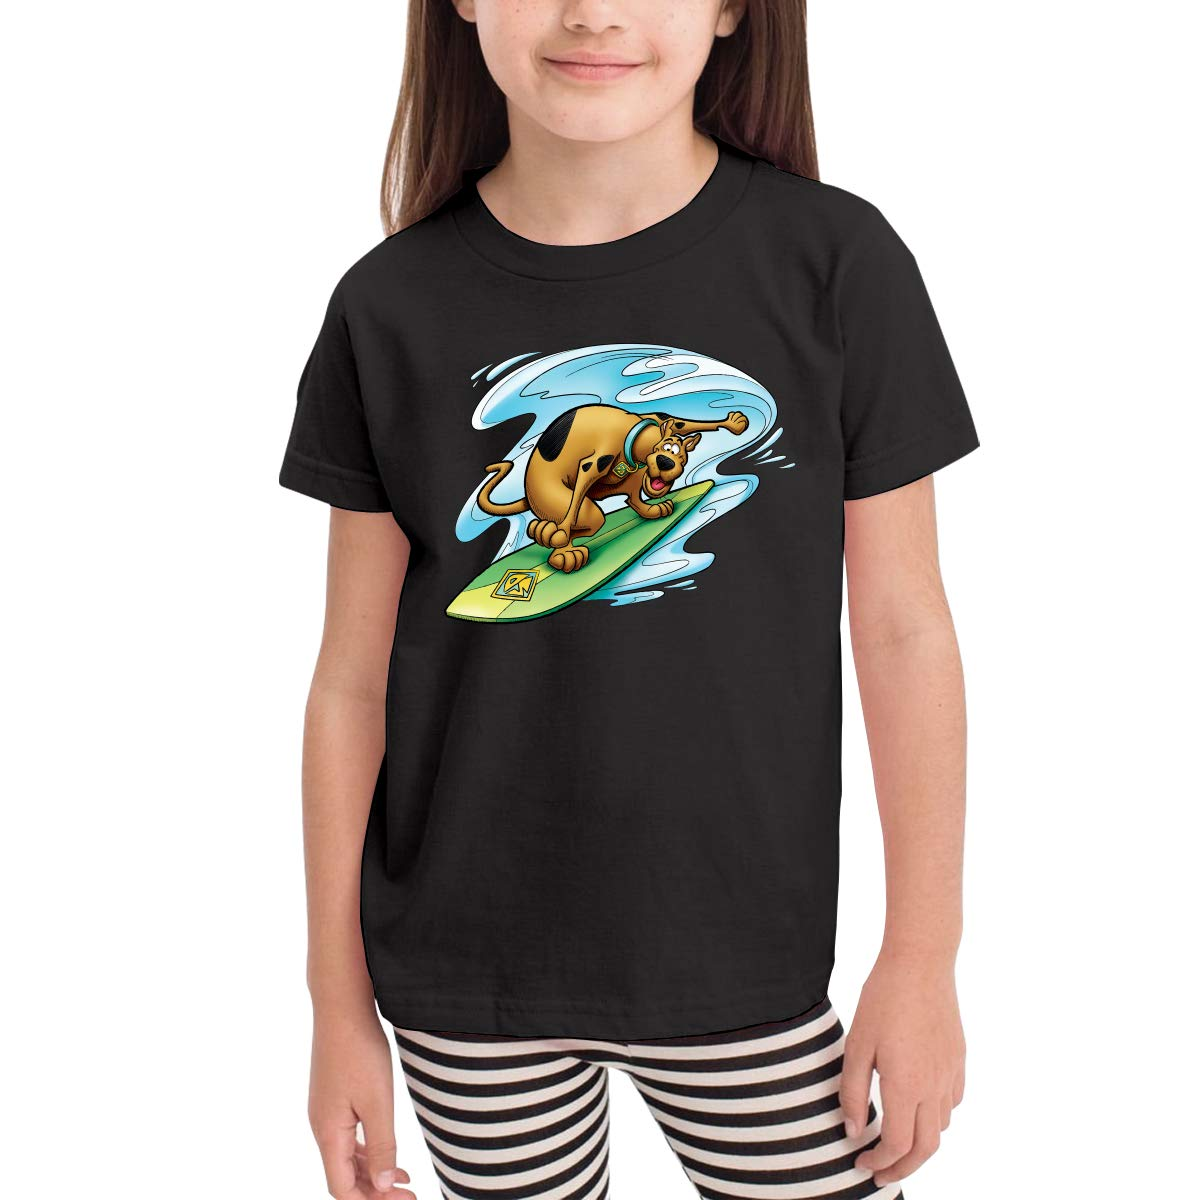 Scooby-Doo Family Short-Sleeve T Shirts Comfort Crew Neck Soft 100/% Cotton Tees